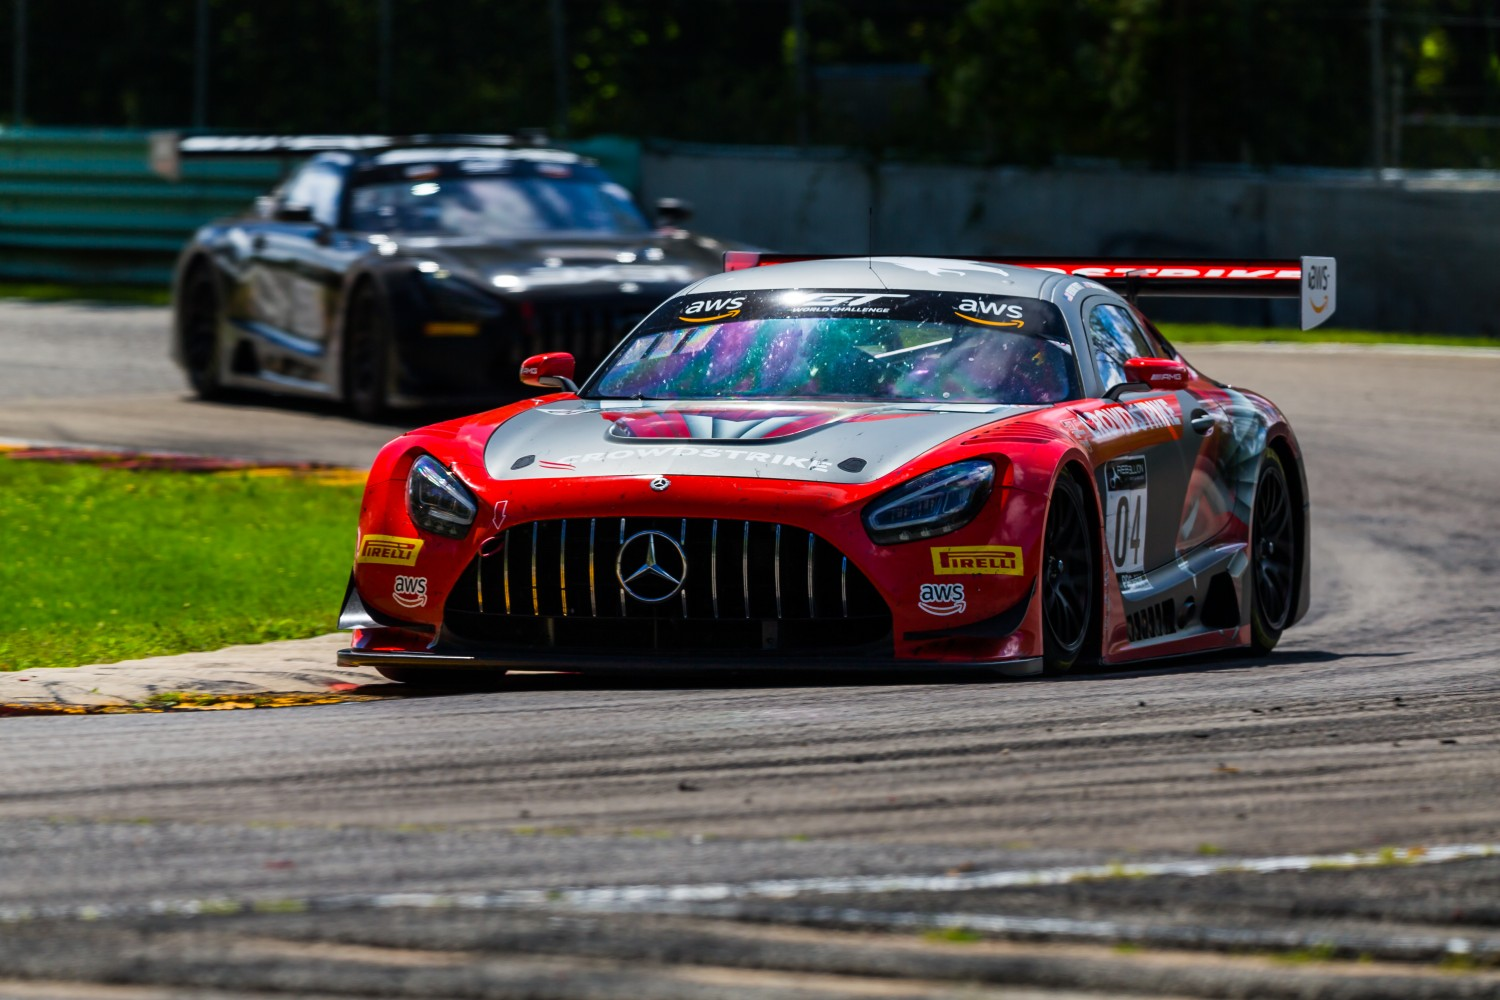 #04 Mercedes-AMG GT3 of George Kurtz and Colin Braun, DXDT Racing, GT3 Pro-Am,   SRO America, Road America,  Elkhart Lake,  WI, July 2020.